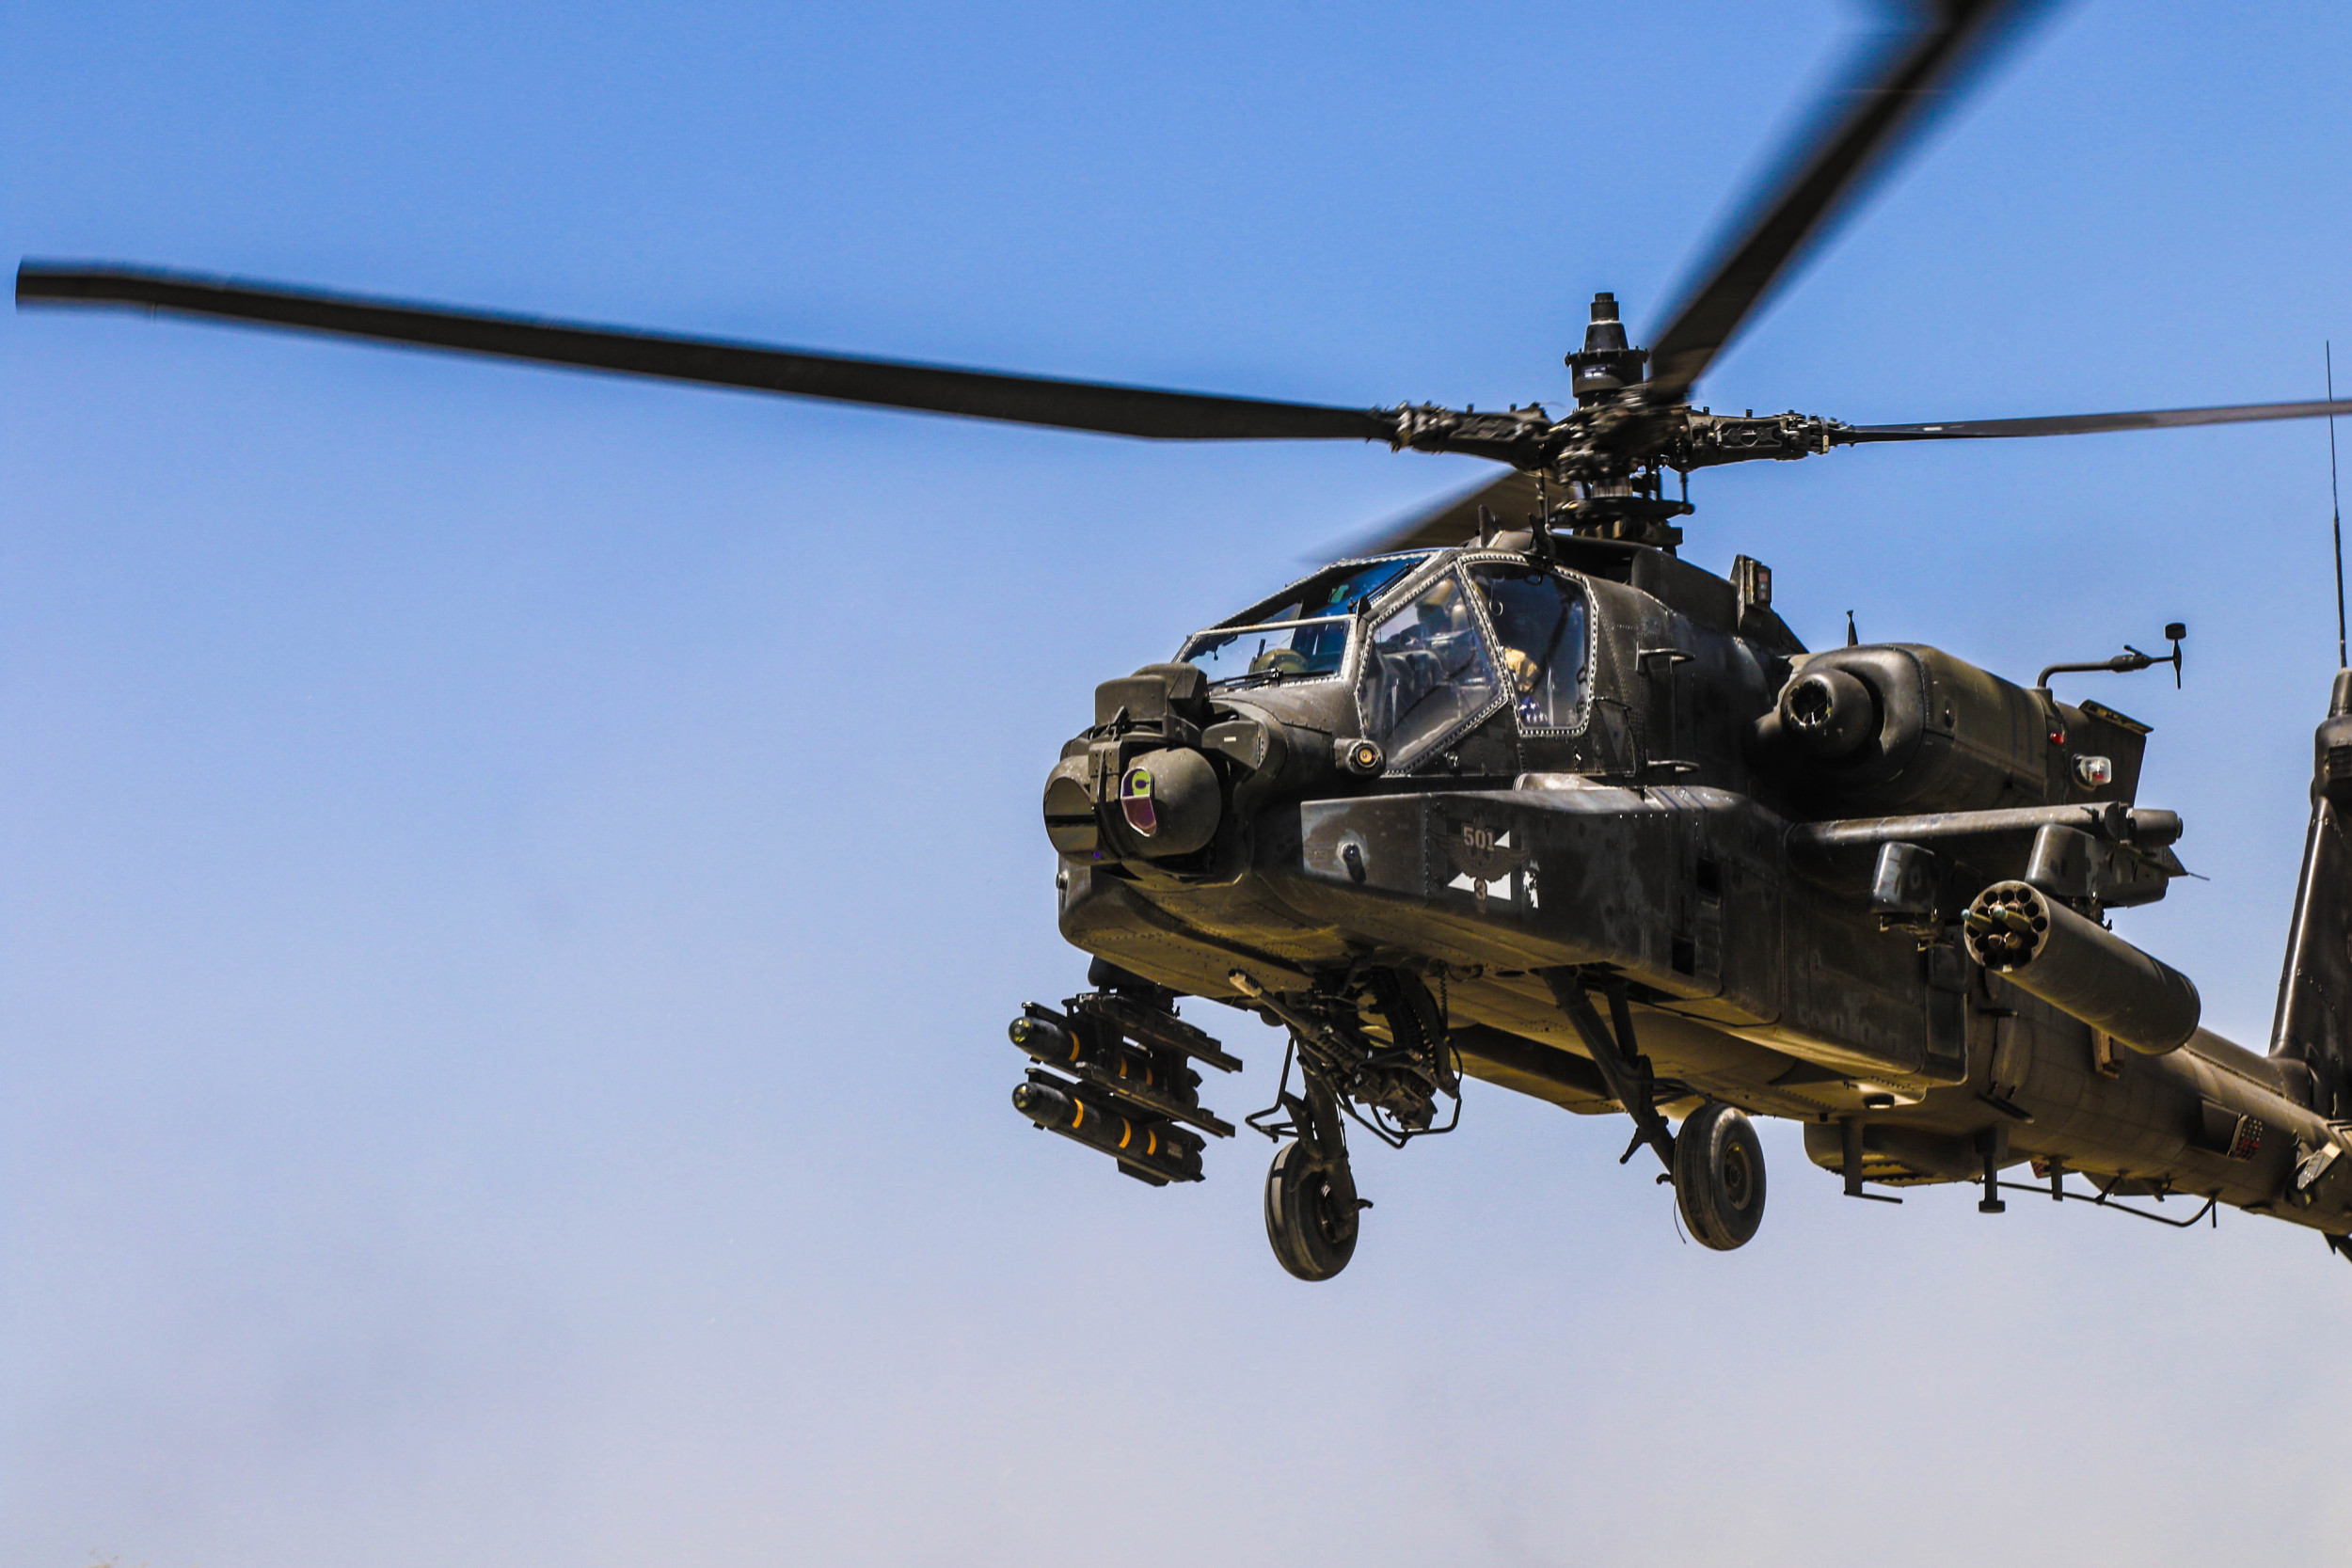 Two American Service Members Killed In Helicopter Crash In